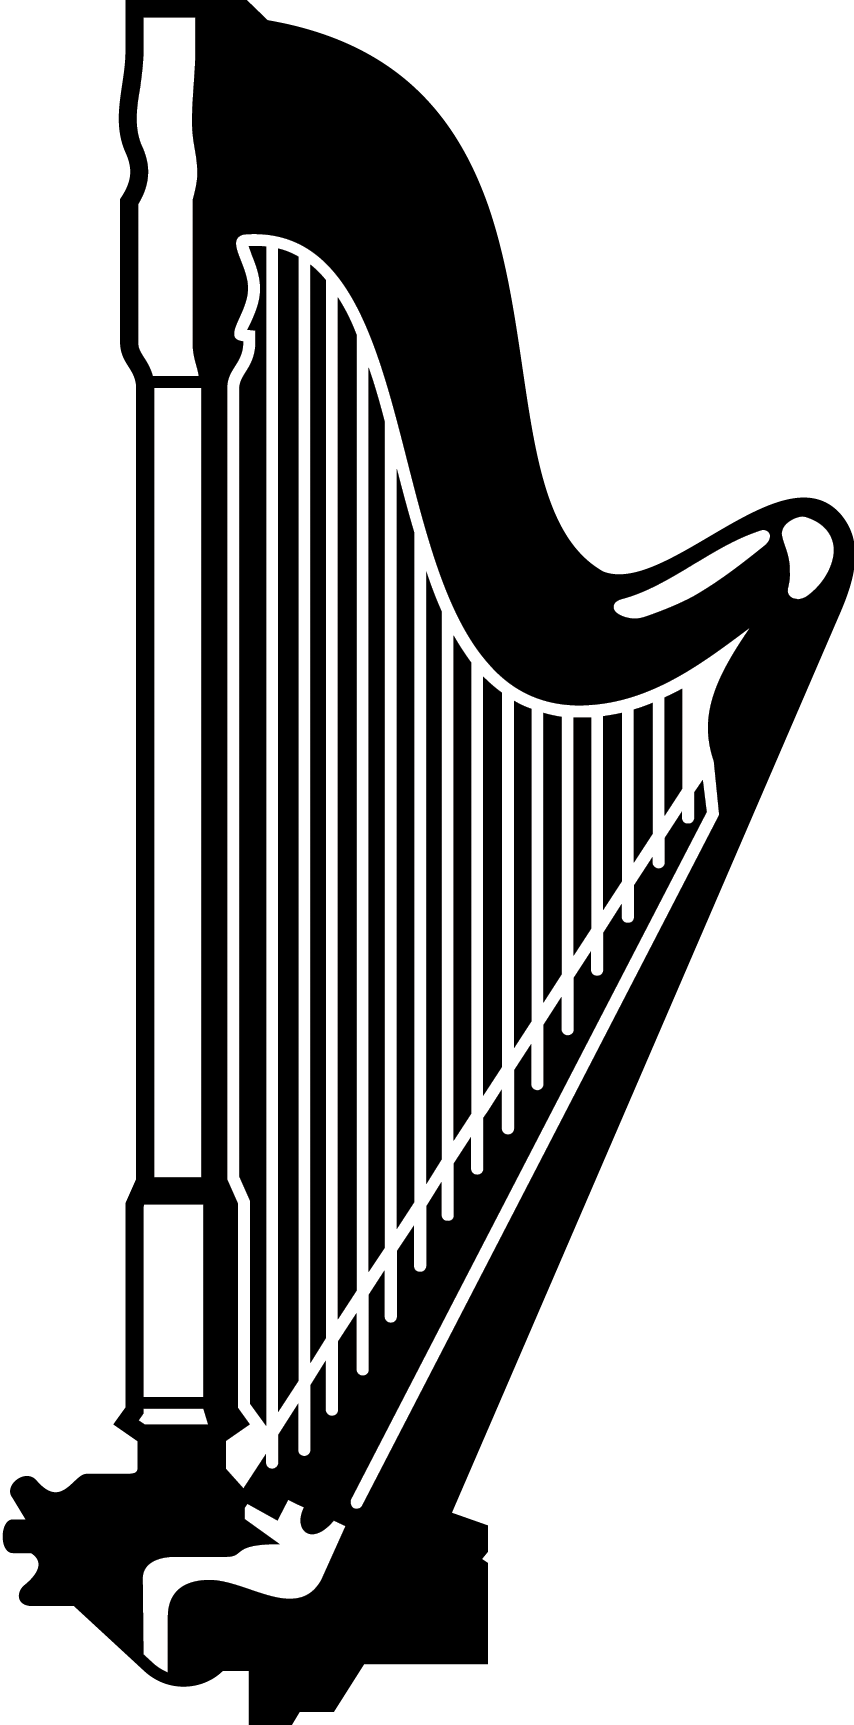 Harp clipart black and white, Harp black and white.